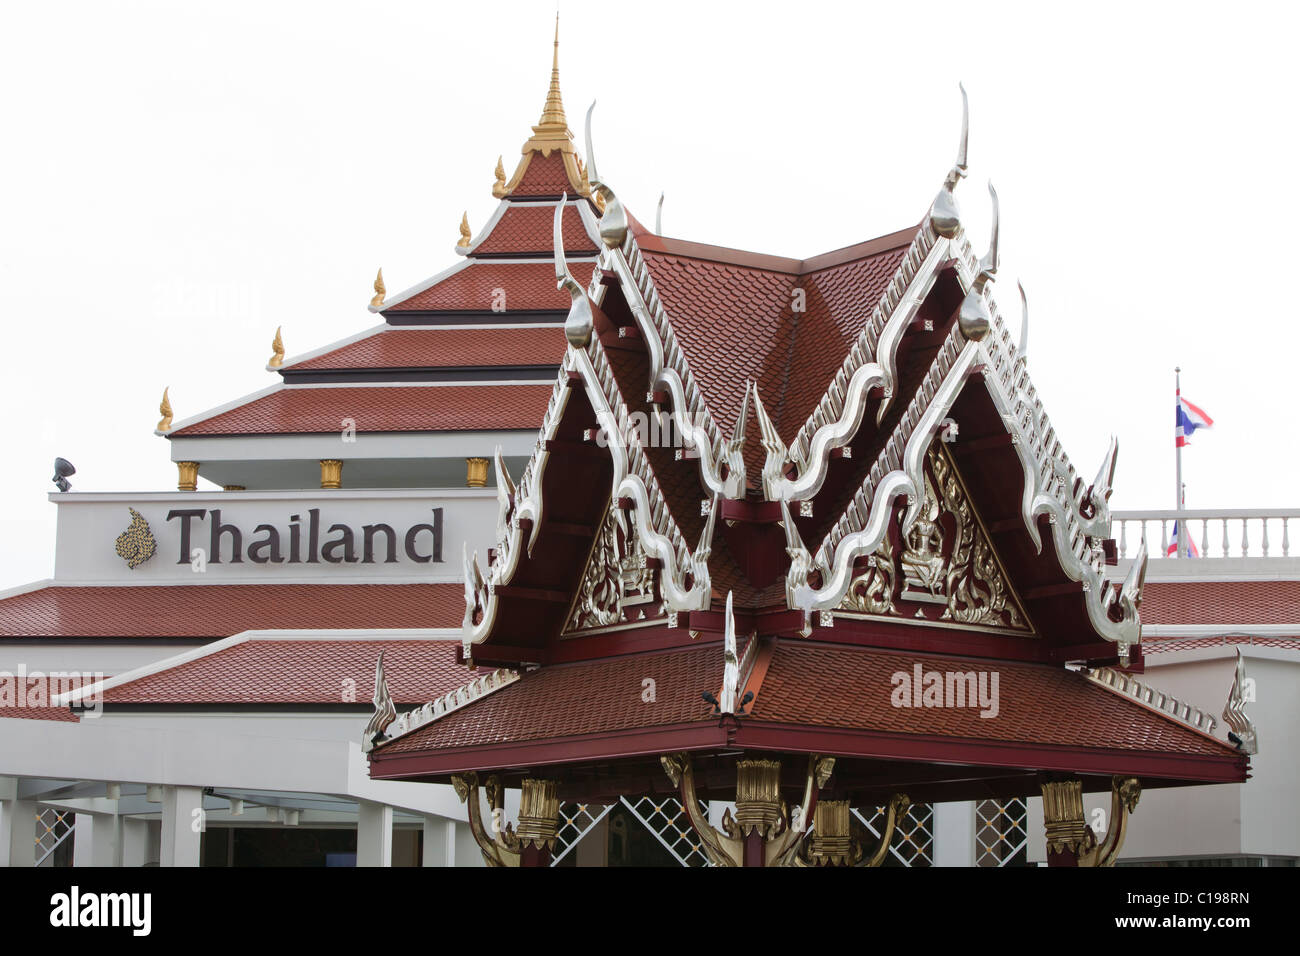 Shanghai World Expo 2010, China, Thailand Pavilion Stock Photo ...